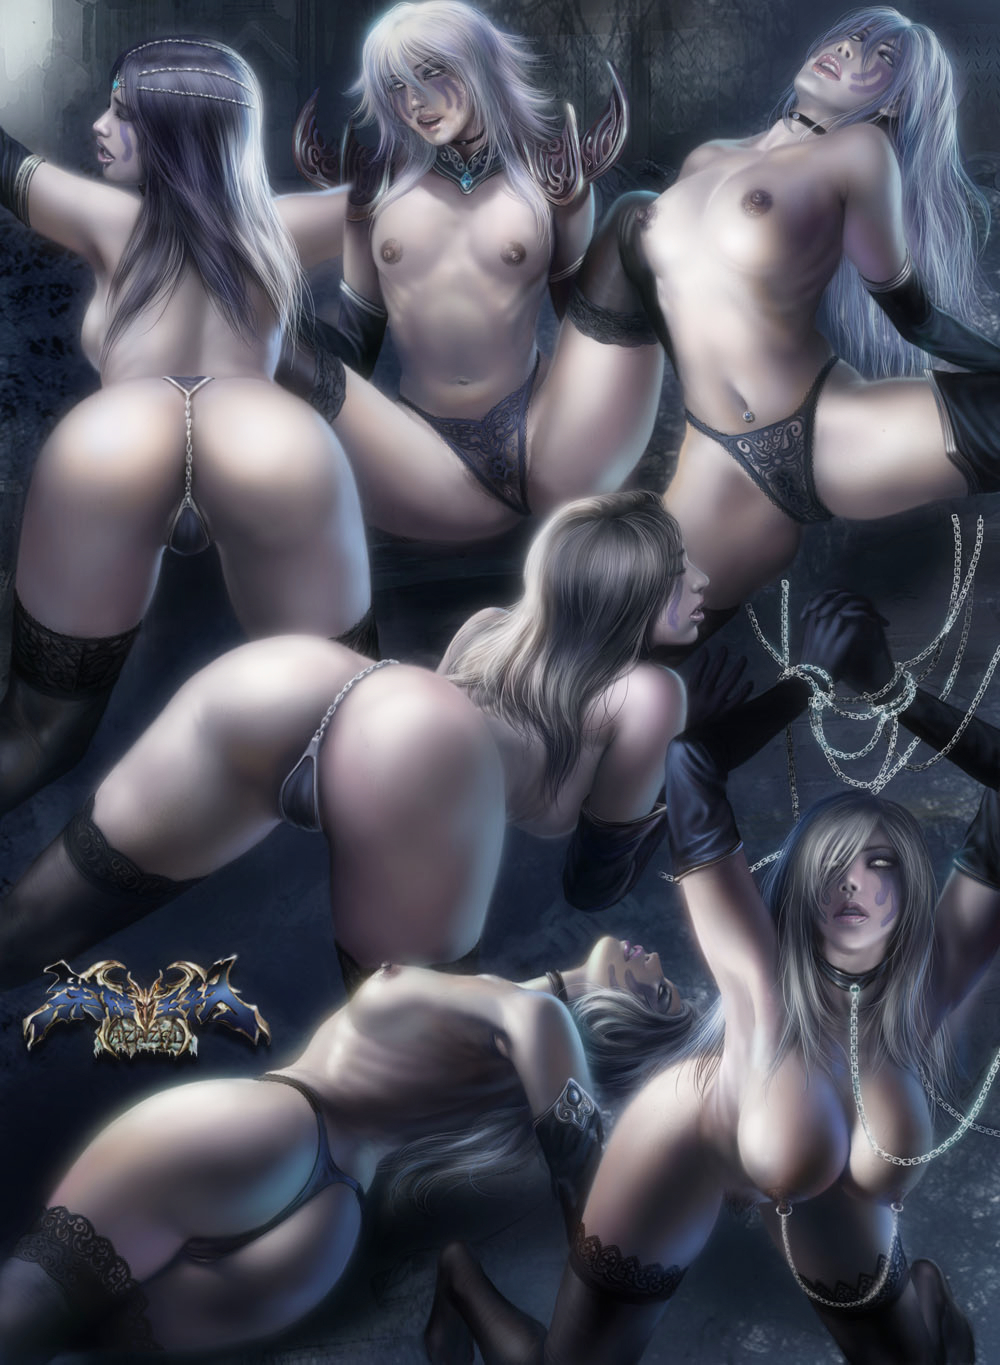 Vampire knight girl naked hentai pics sexy photos